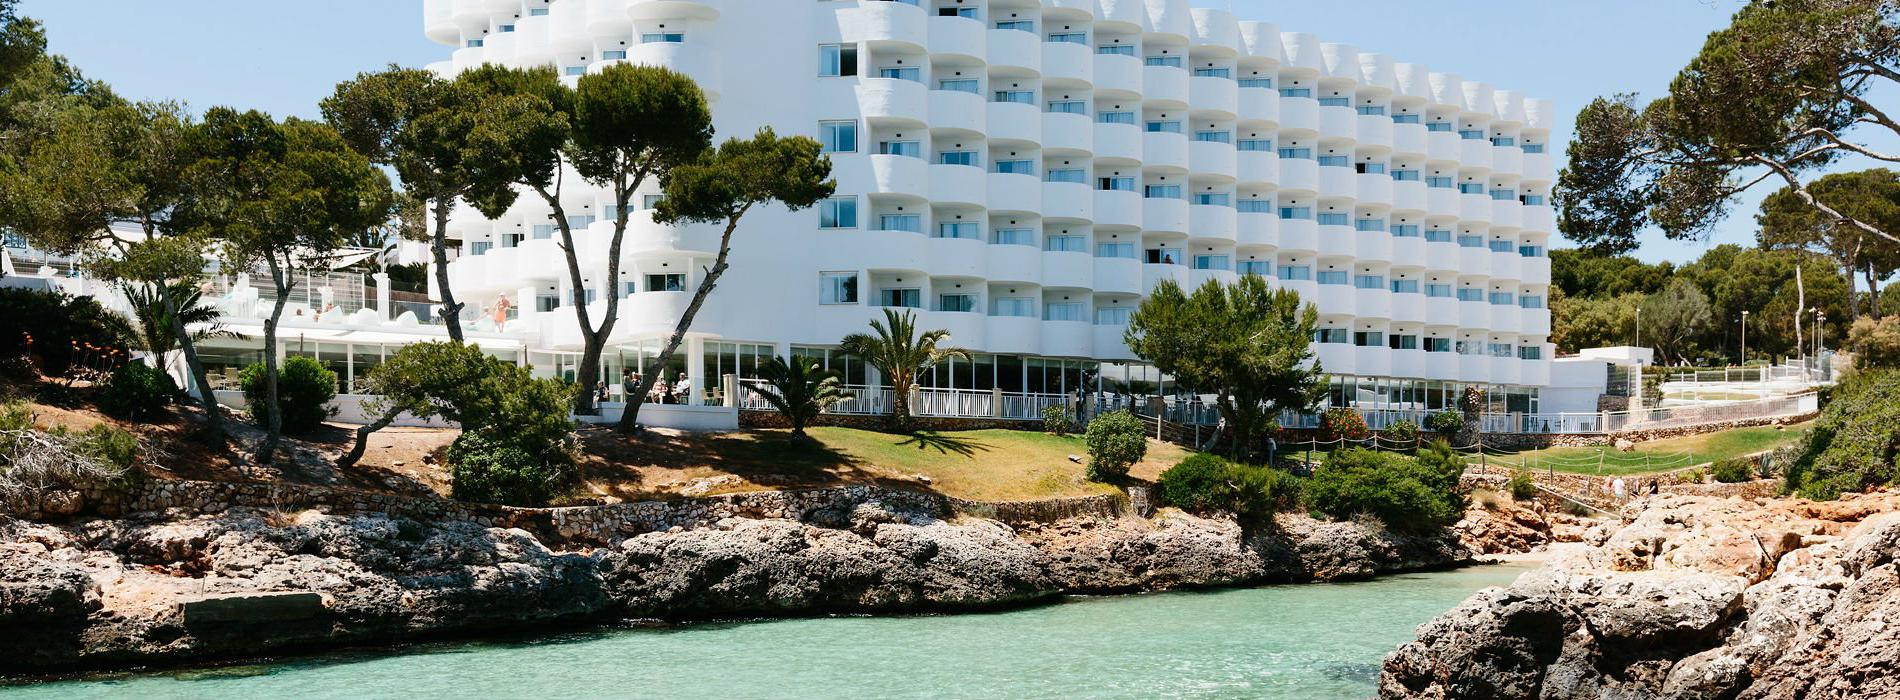 AluaSoul · Mallorca Resort **** AluaSoul Mallorca Resort (Adults Only) Hotel Cala d'Or, Mallorca